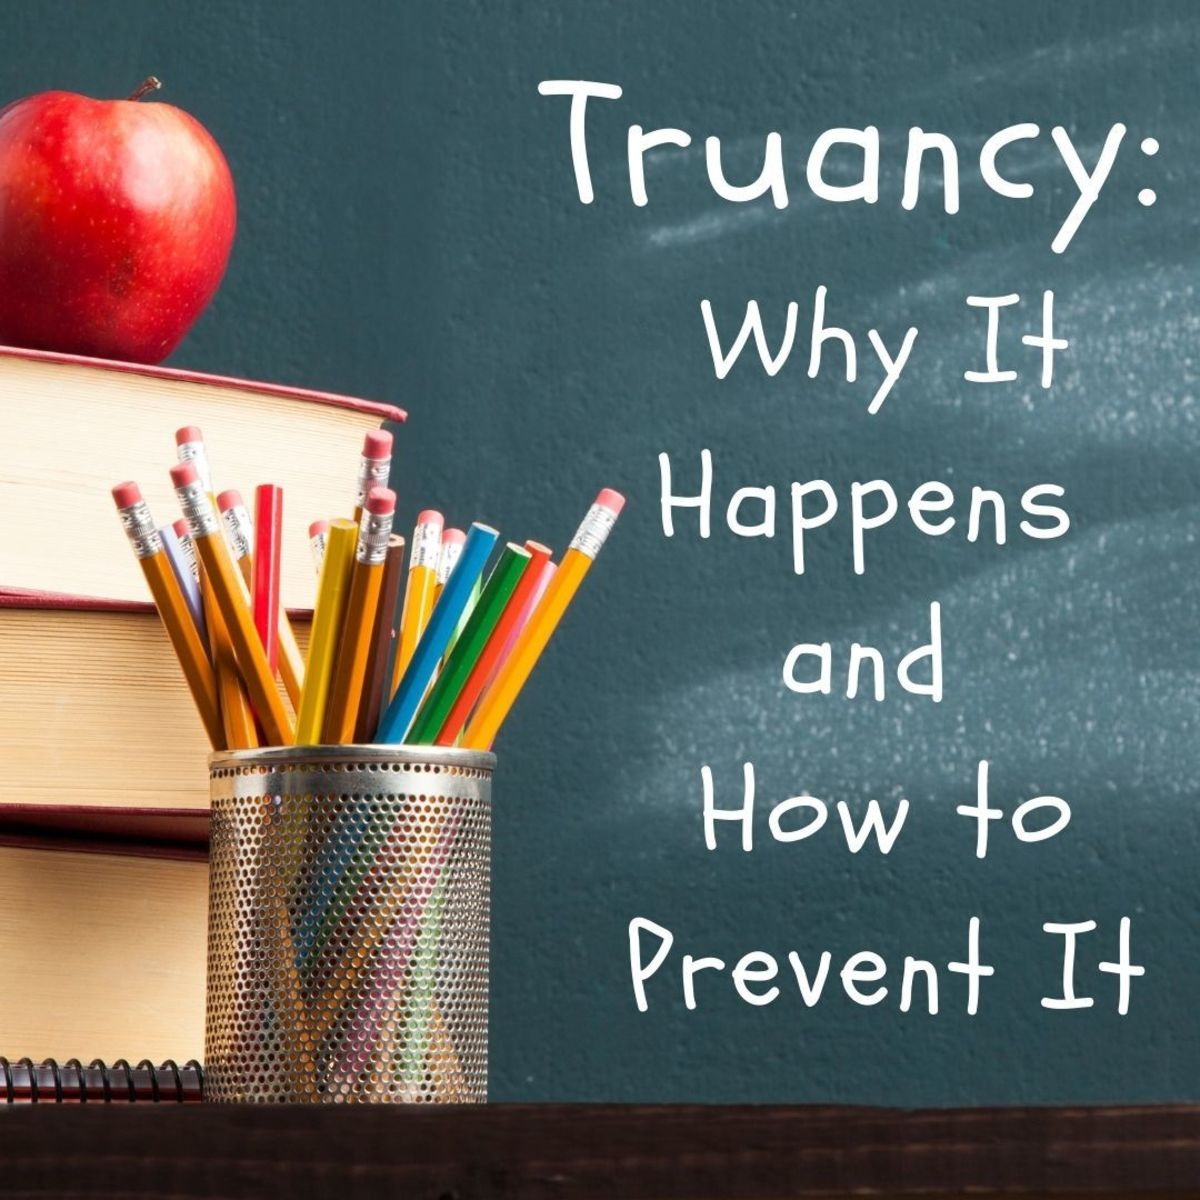 What is truancy, and how can it be prevented?